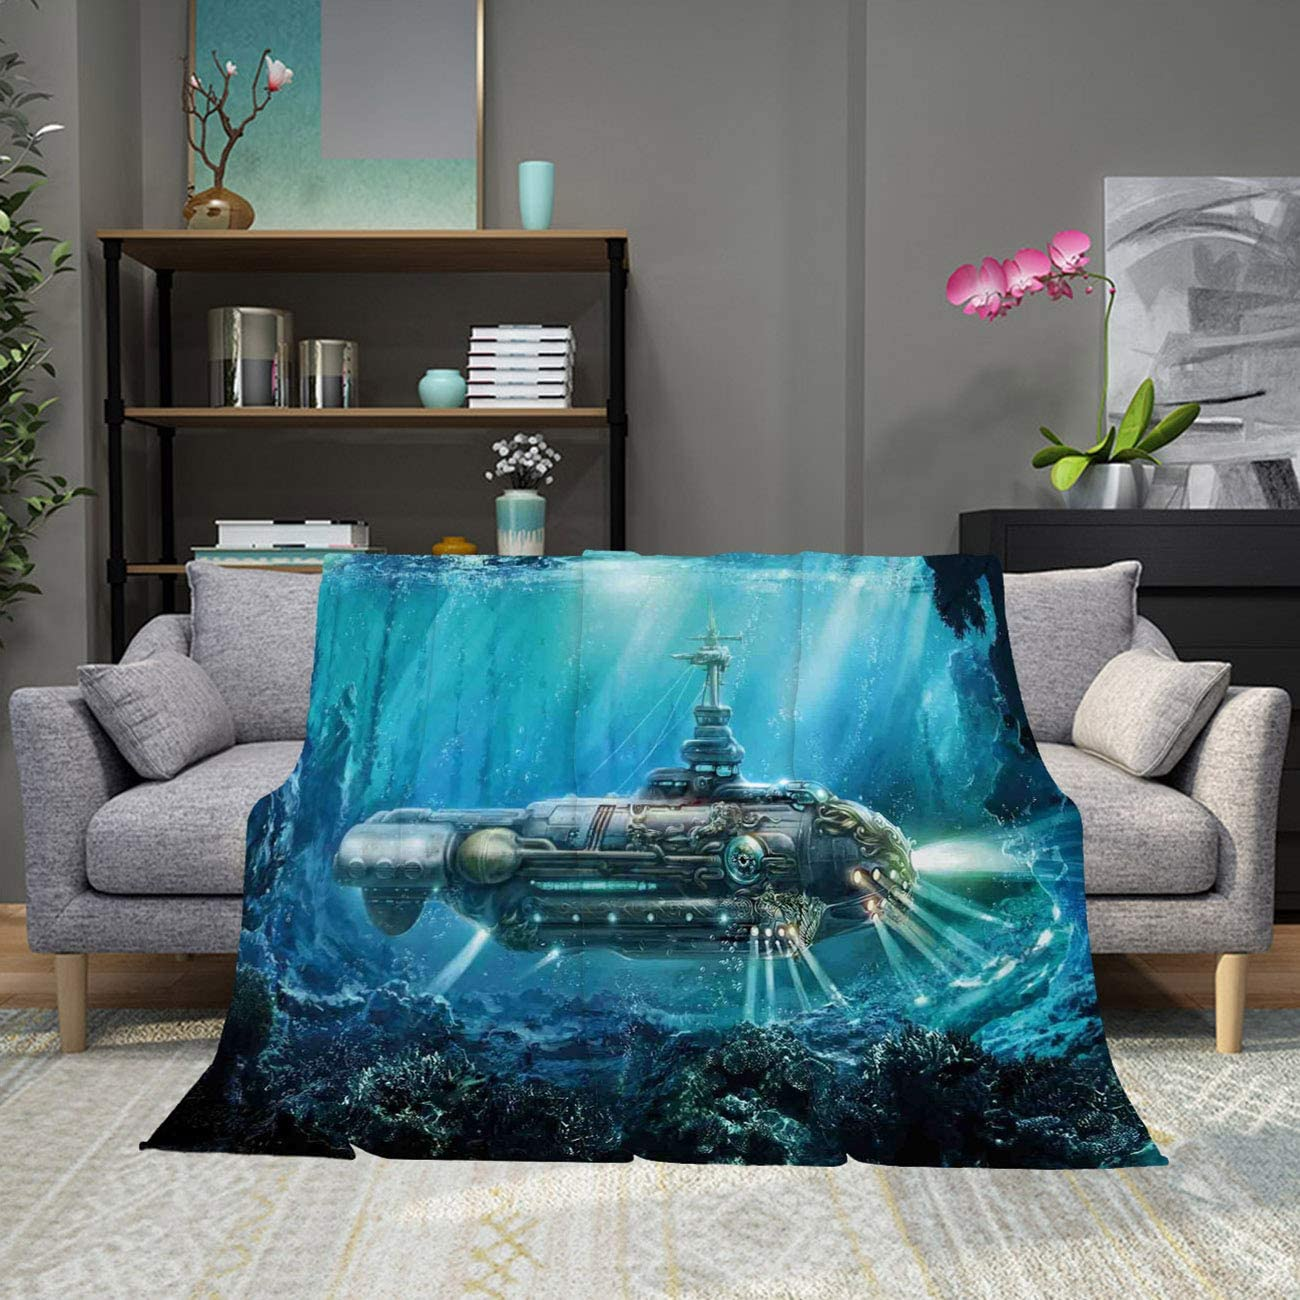 RLDRESS All-Season Color Super Soft Throw Blanket Warm Blanket Science Fiction Submarine Underwater War Futuristic Silver Aqua Cozy Blanket for Living room/bedroom-50x60in